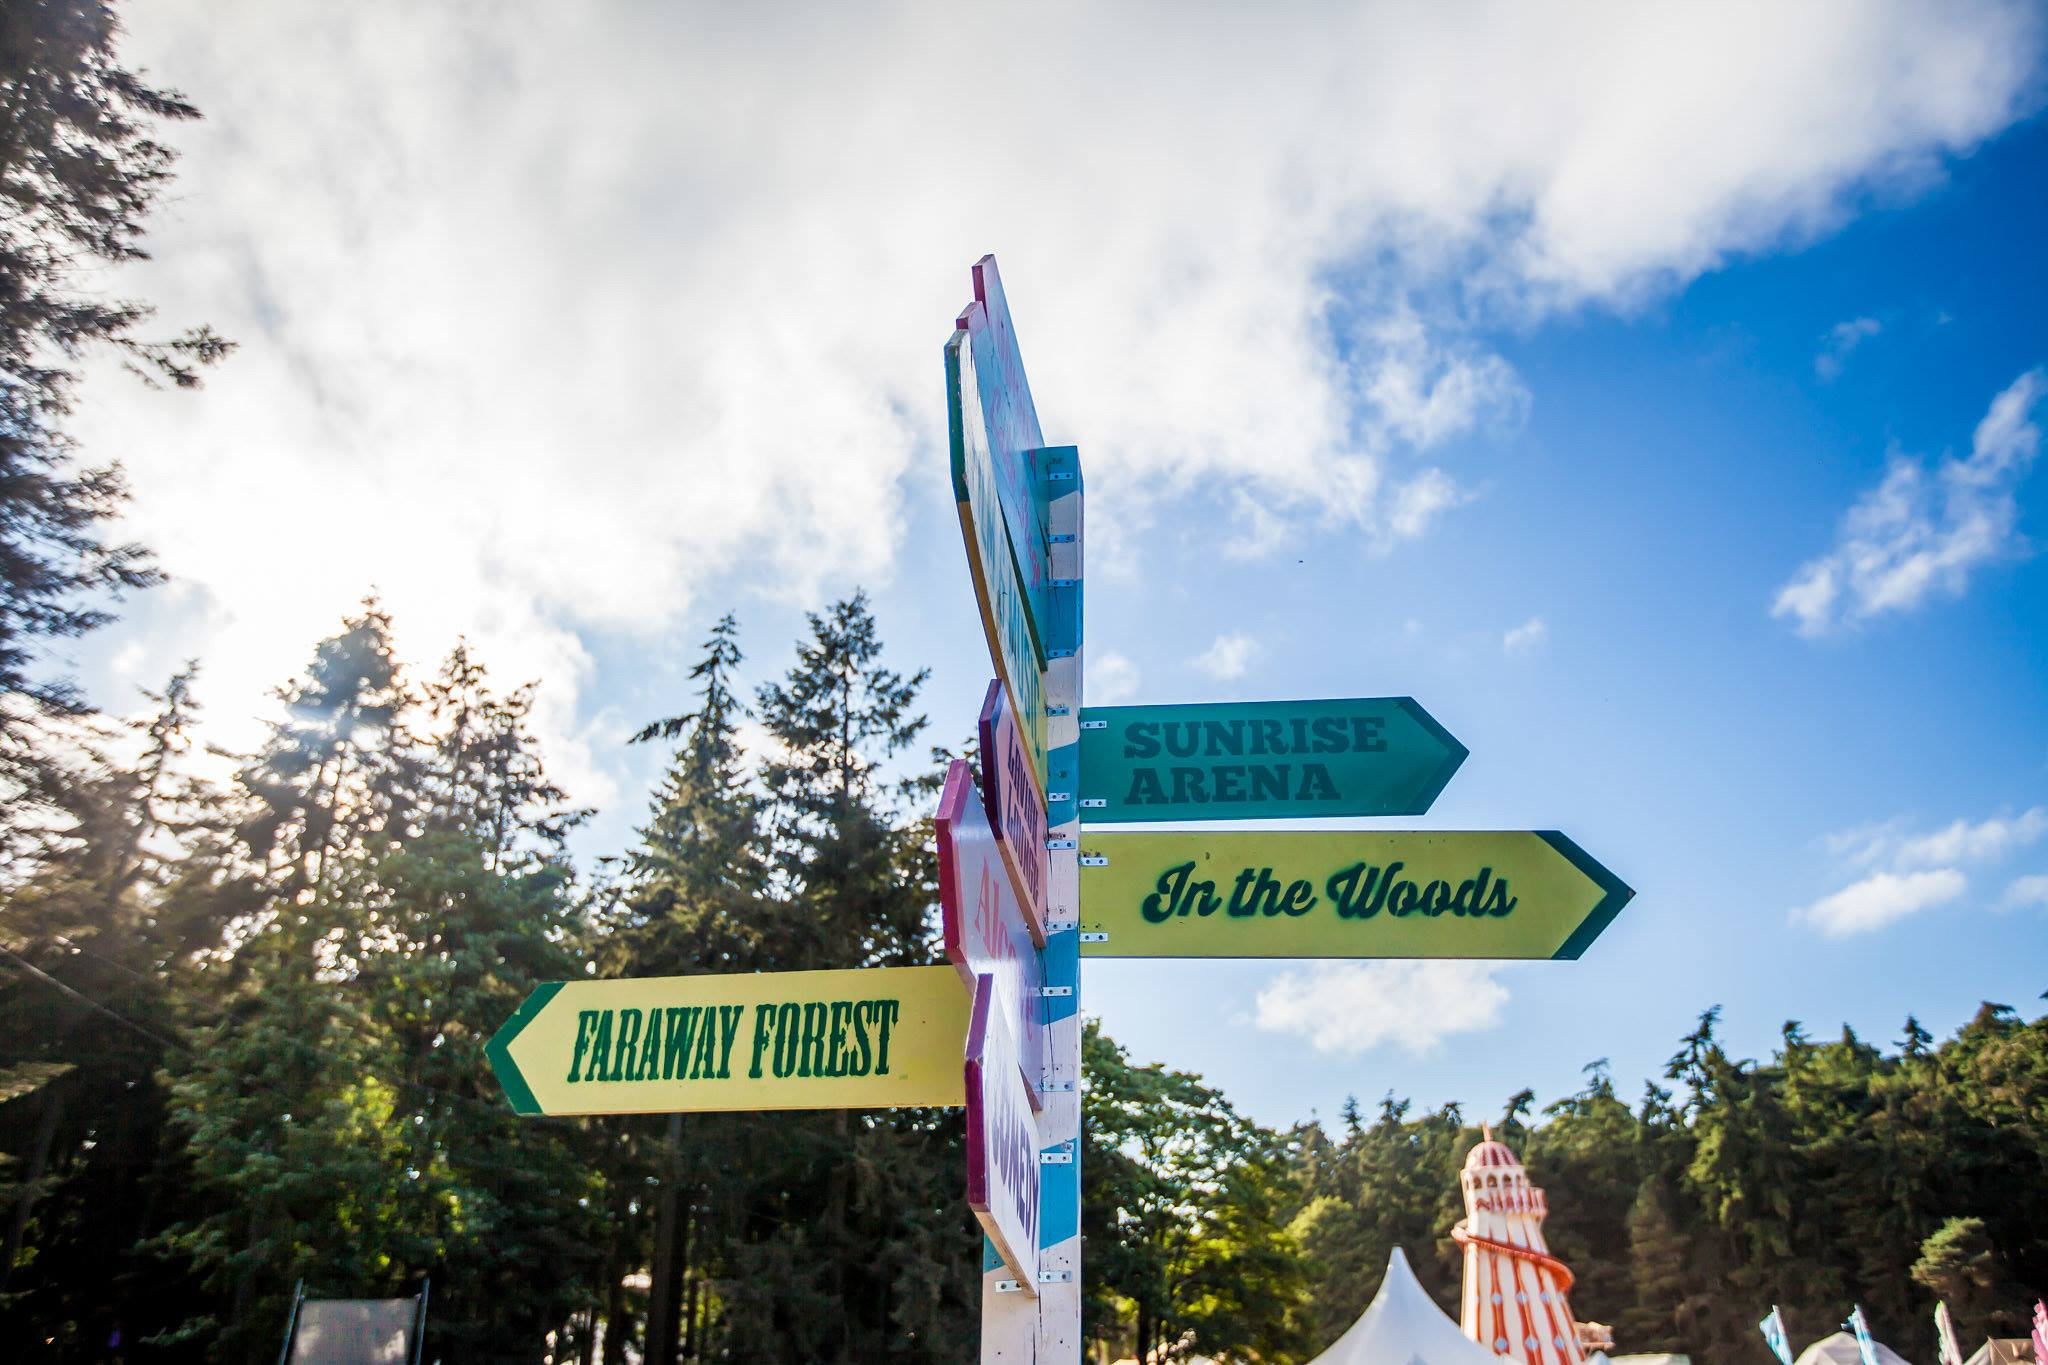 Standing at the crossroads of adventure!